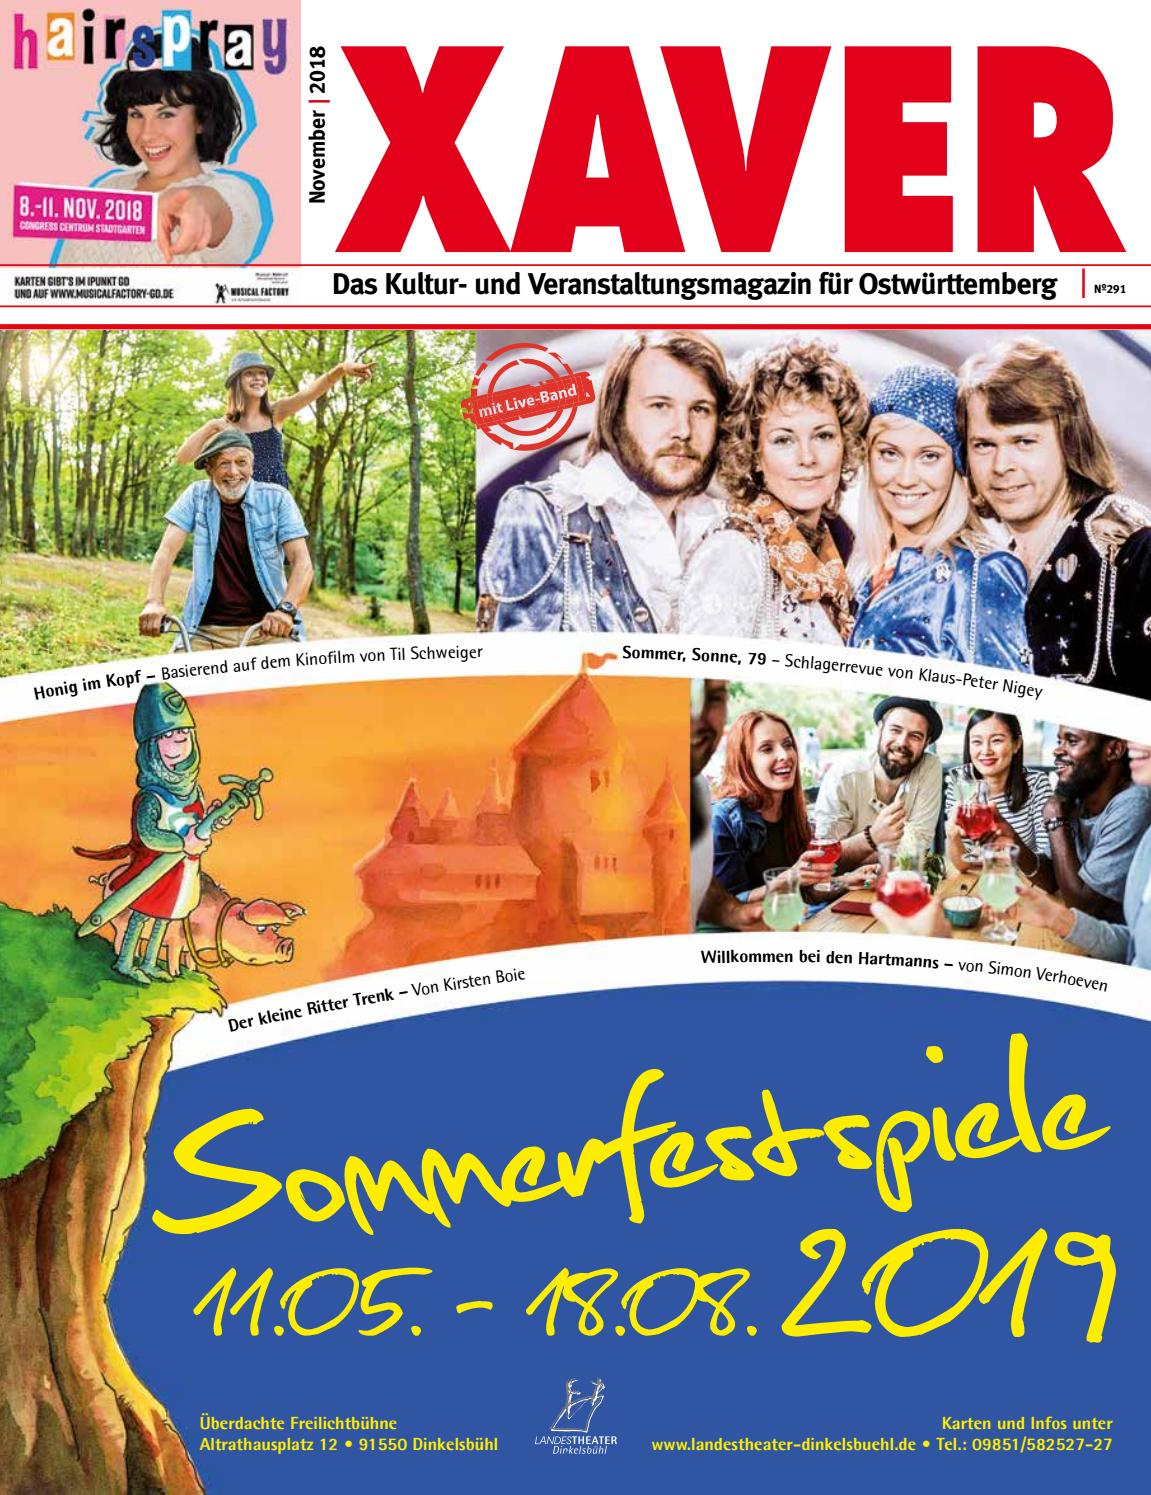 XAVER November '11 by Hariolf Erhardt issuu